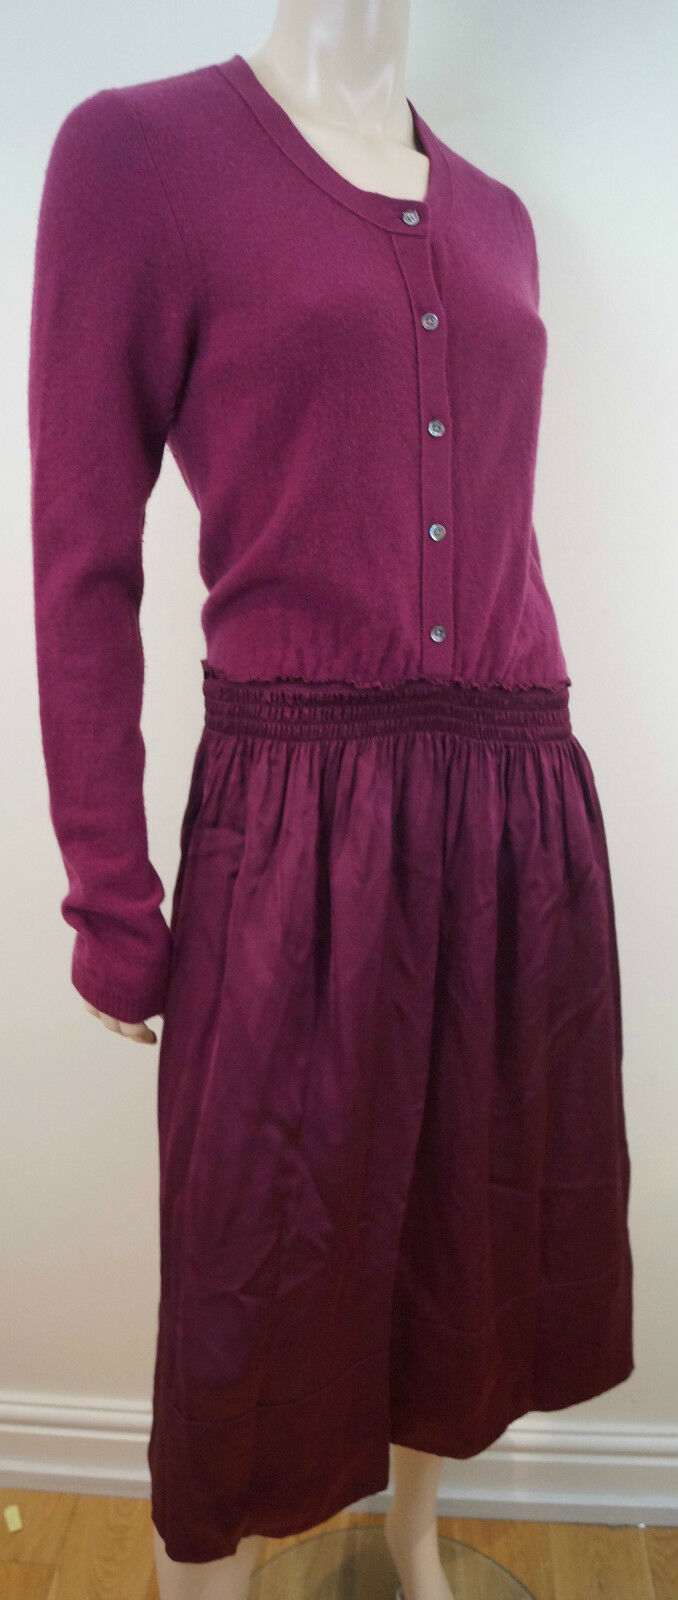 DKNY women KARAN Plum Pink Wool Cashmere Elasticated Waist Jumper Dress Sz L